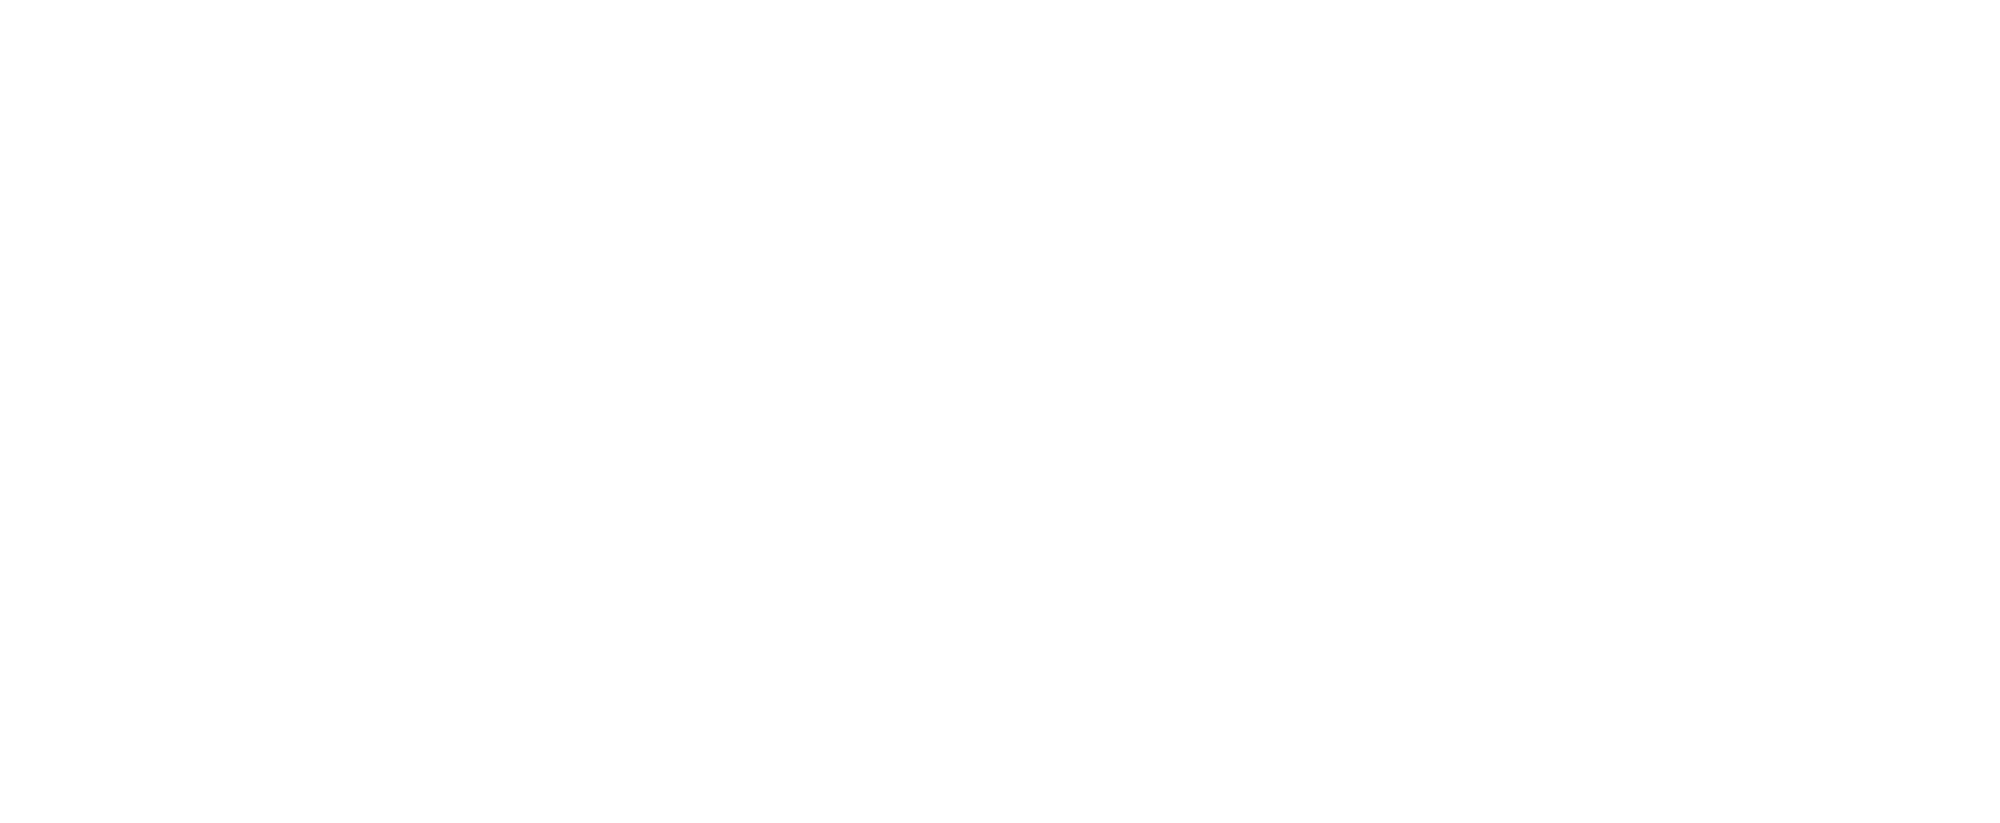 Organic Yoga Greece